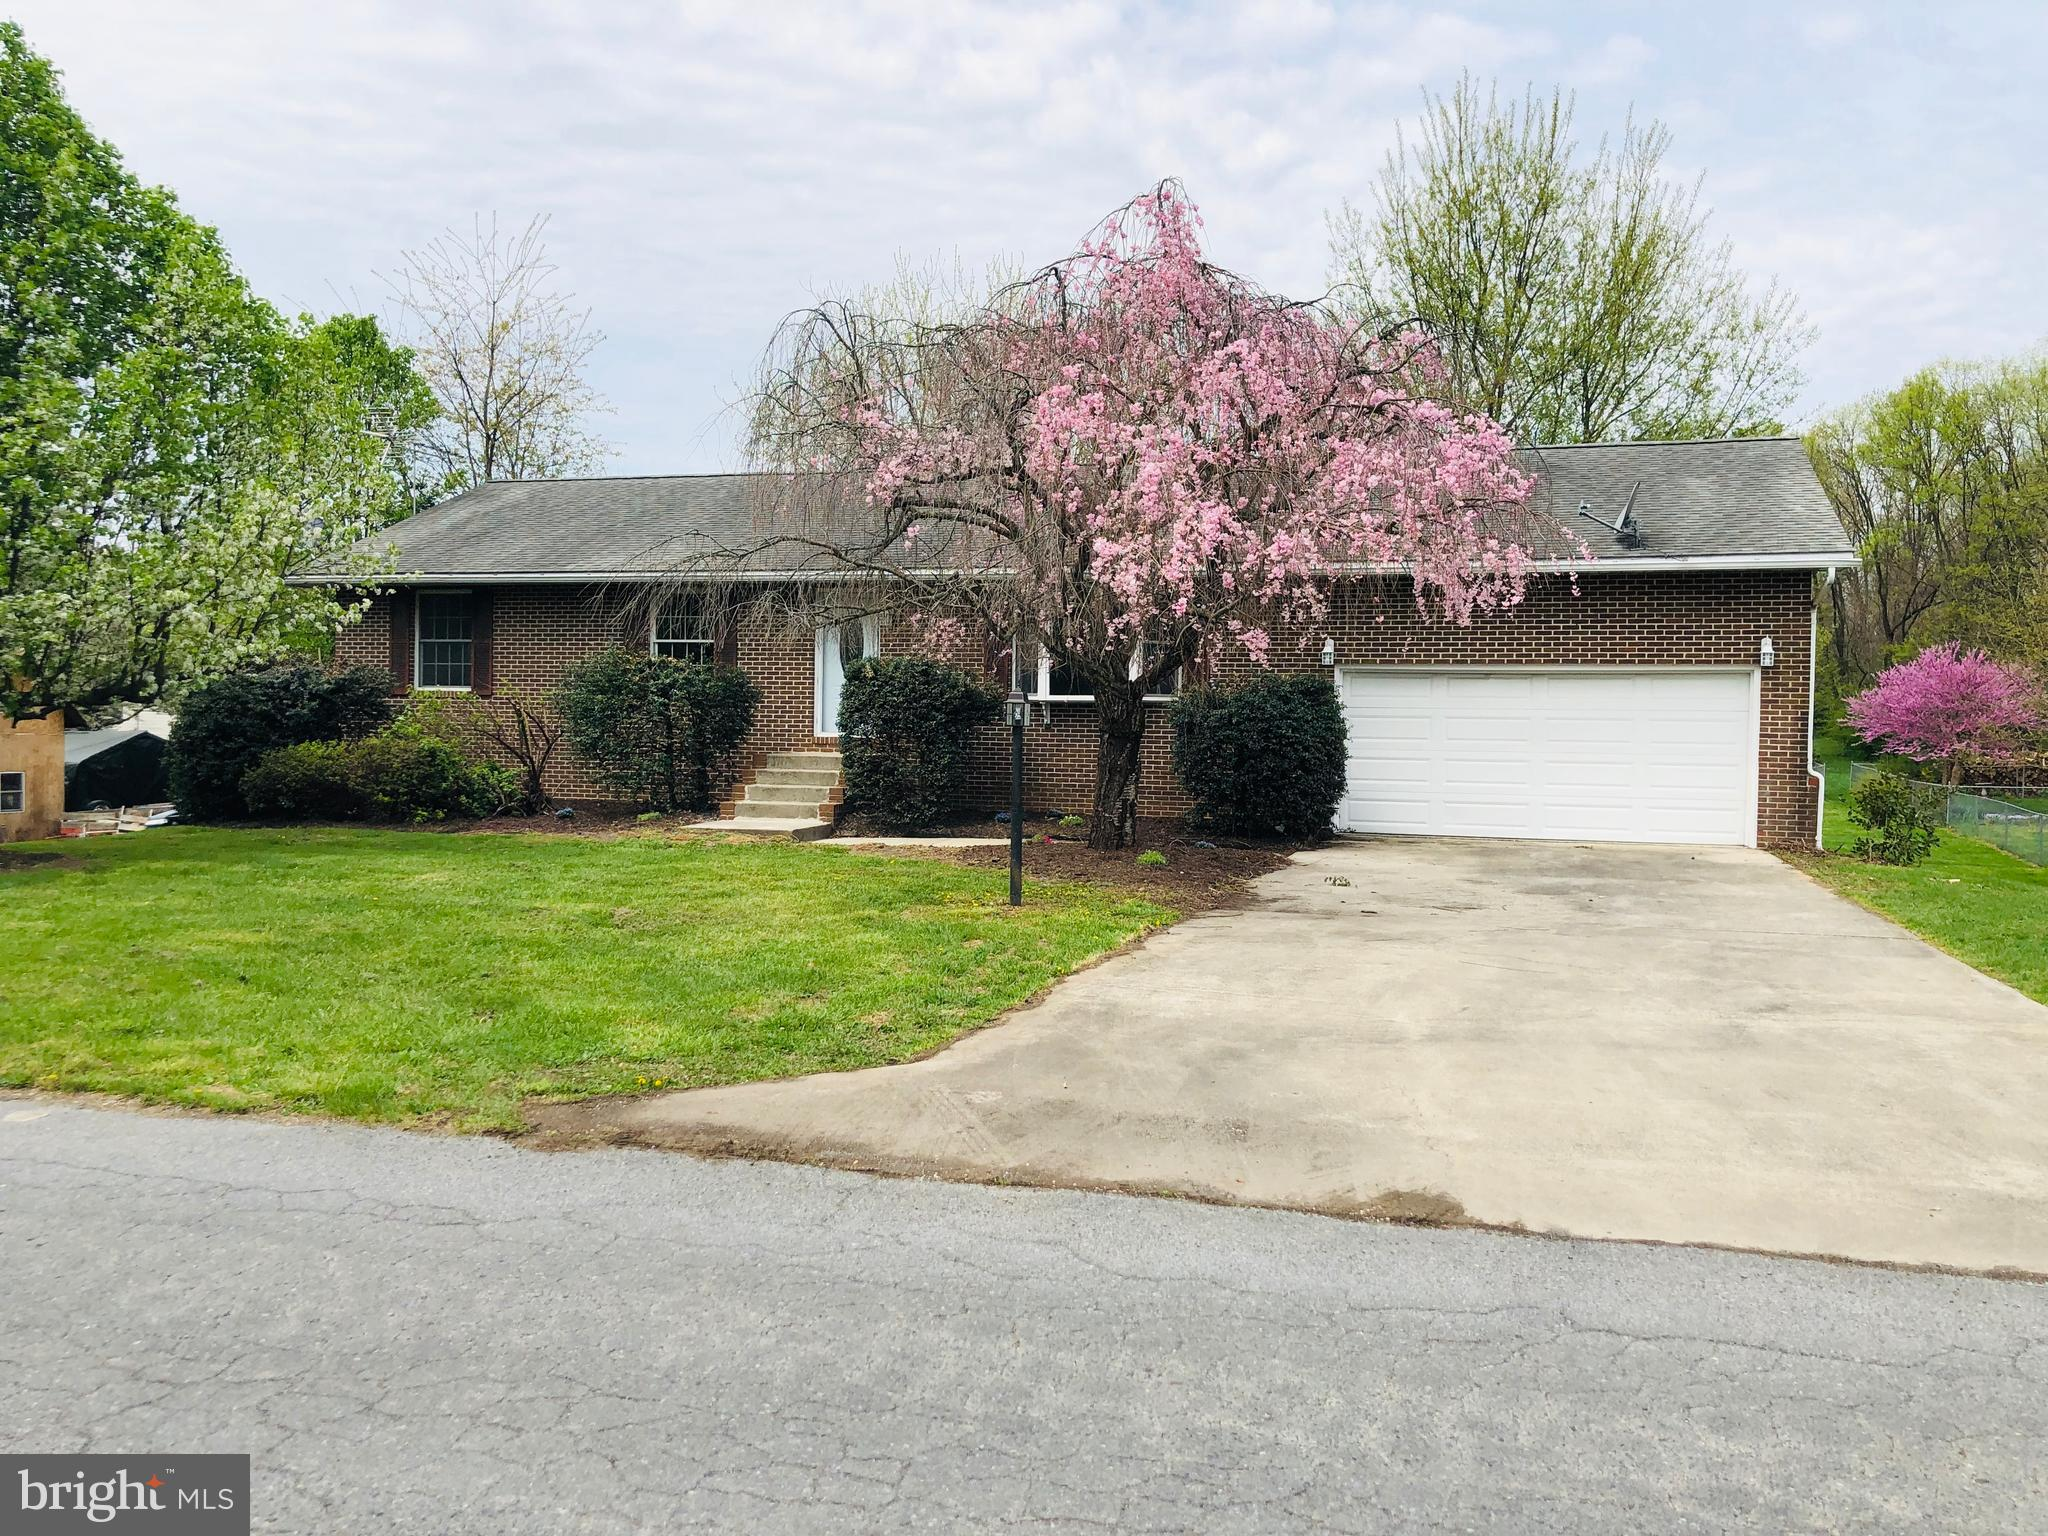 Move in Ready! Home features 4 BRs, 2 full baths, separate dining room, mostly finished basement with unfinished rooms for extra storage, attached 2 car garage with large mud room/ laundry room, all new appliances and rear deck. Seller offering a Home Warranty